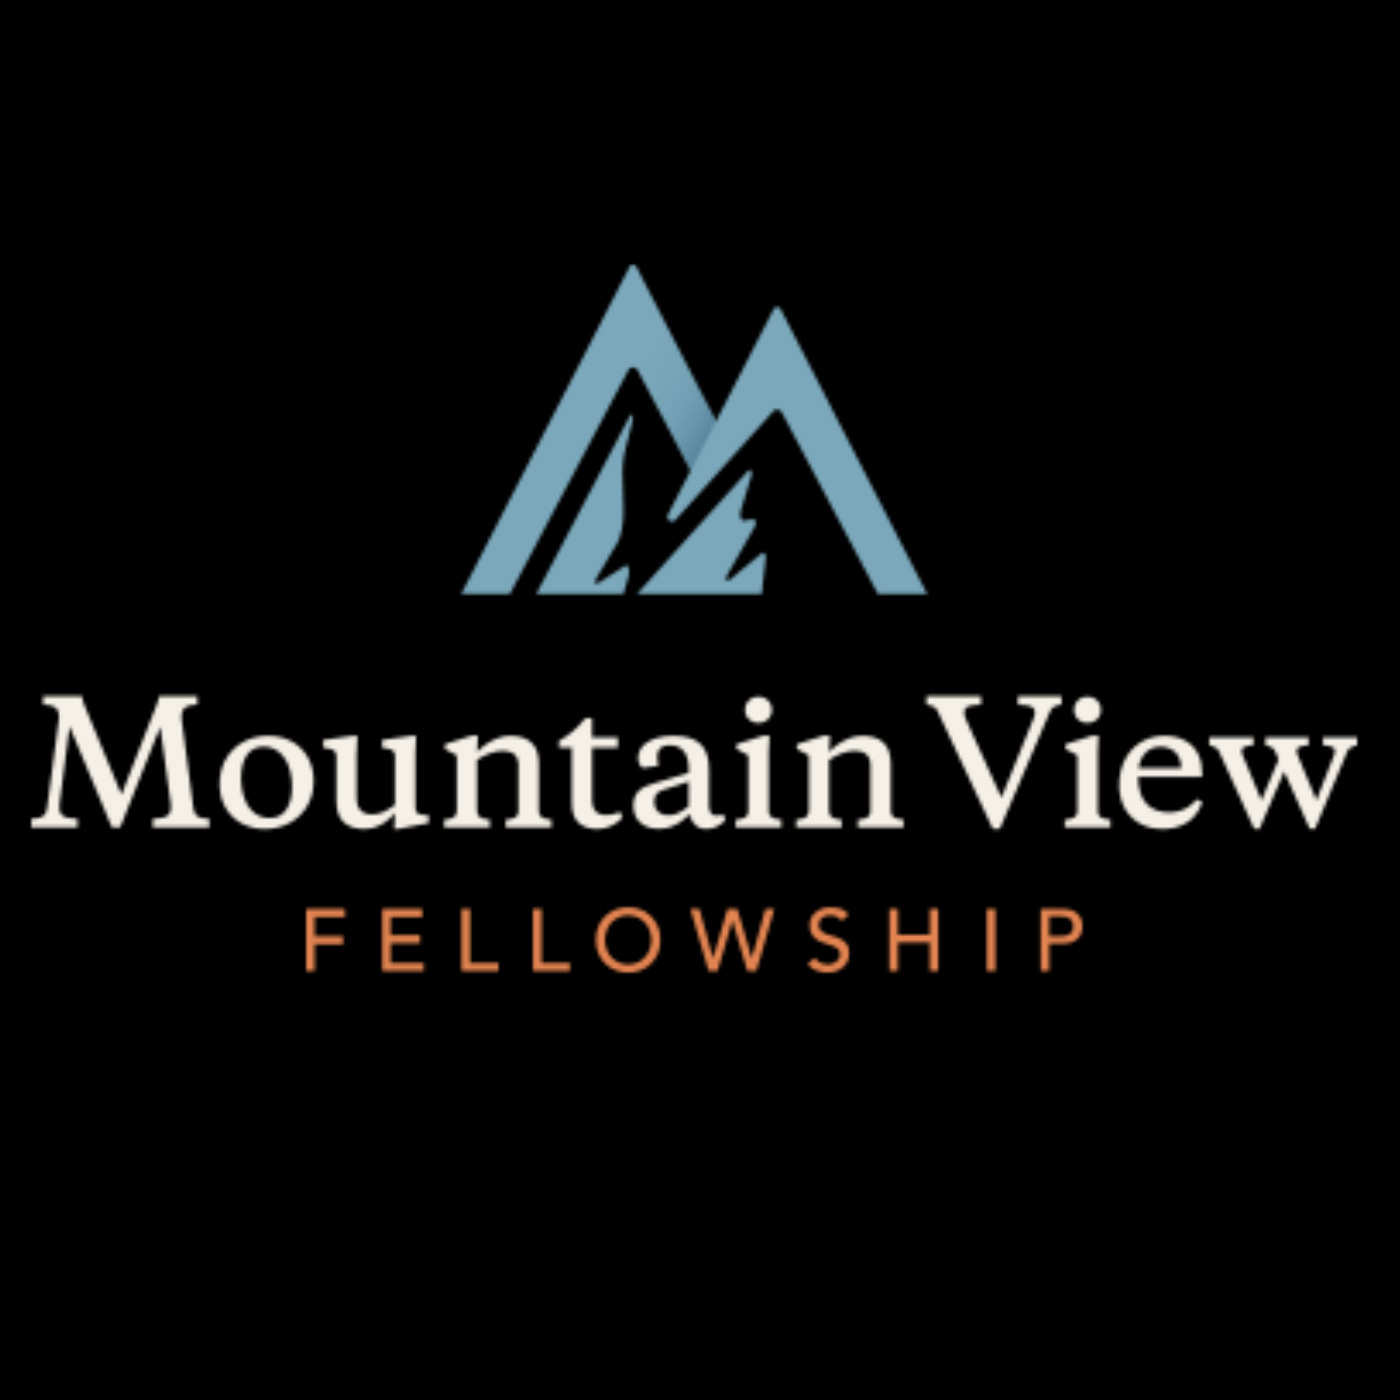 Mountain View Fellowship